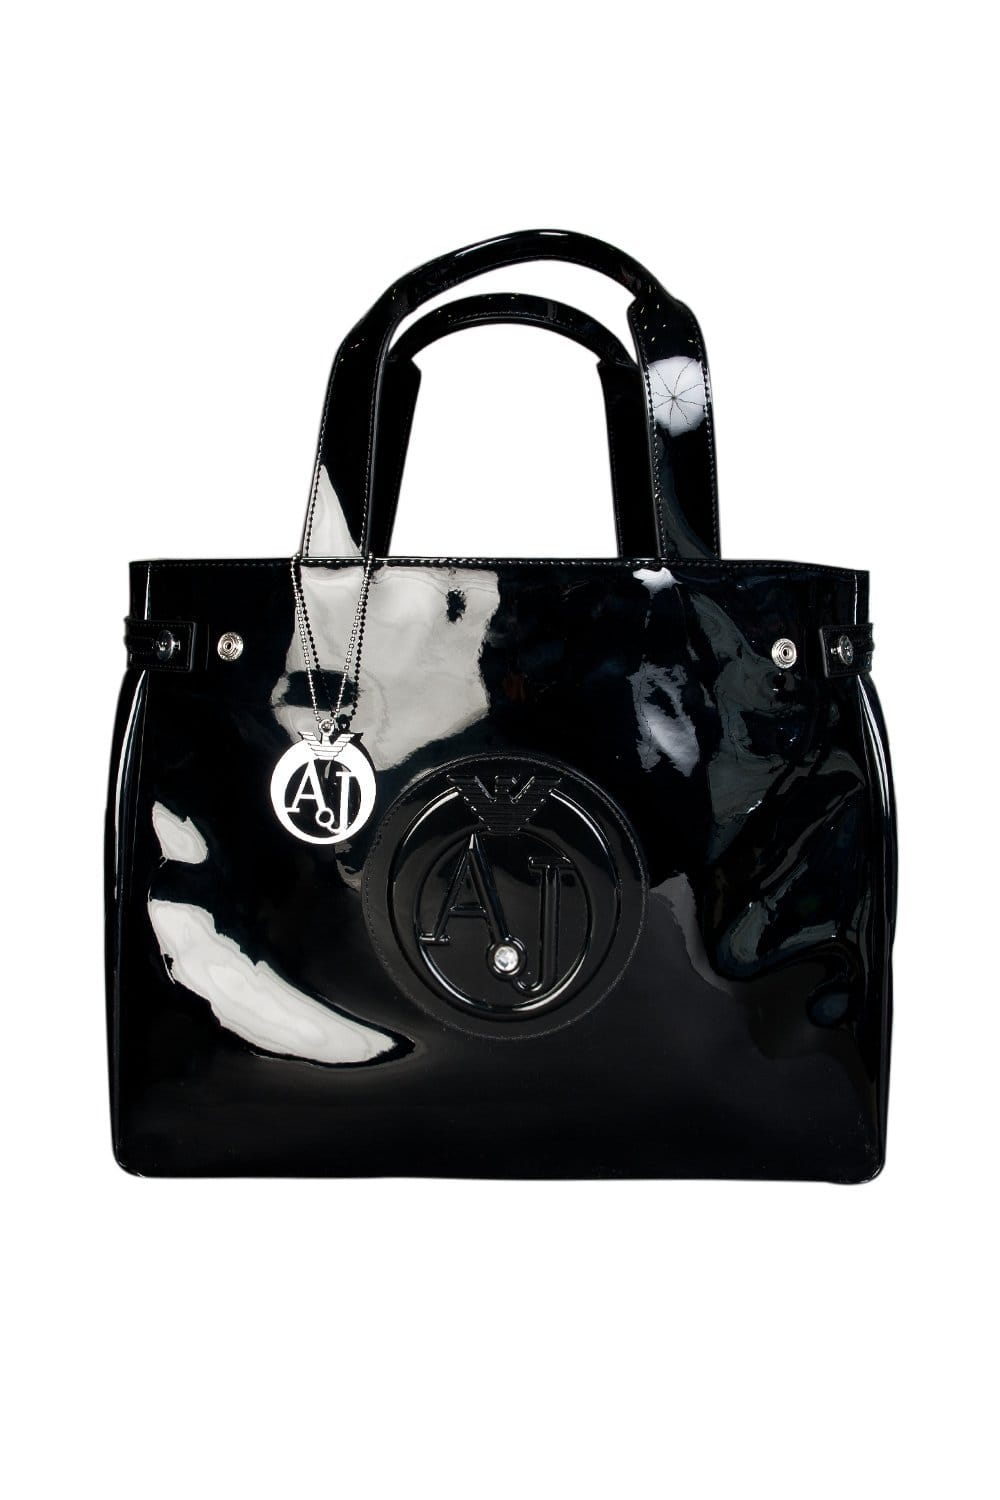 Armani Jeans Ladies Patent Leather Look Shopping Bag in Black 0524655 -  Ladies Accessories from Sage Clothing UK d1cf1ef2c39e9